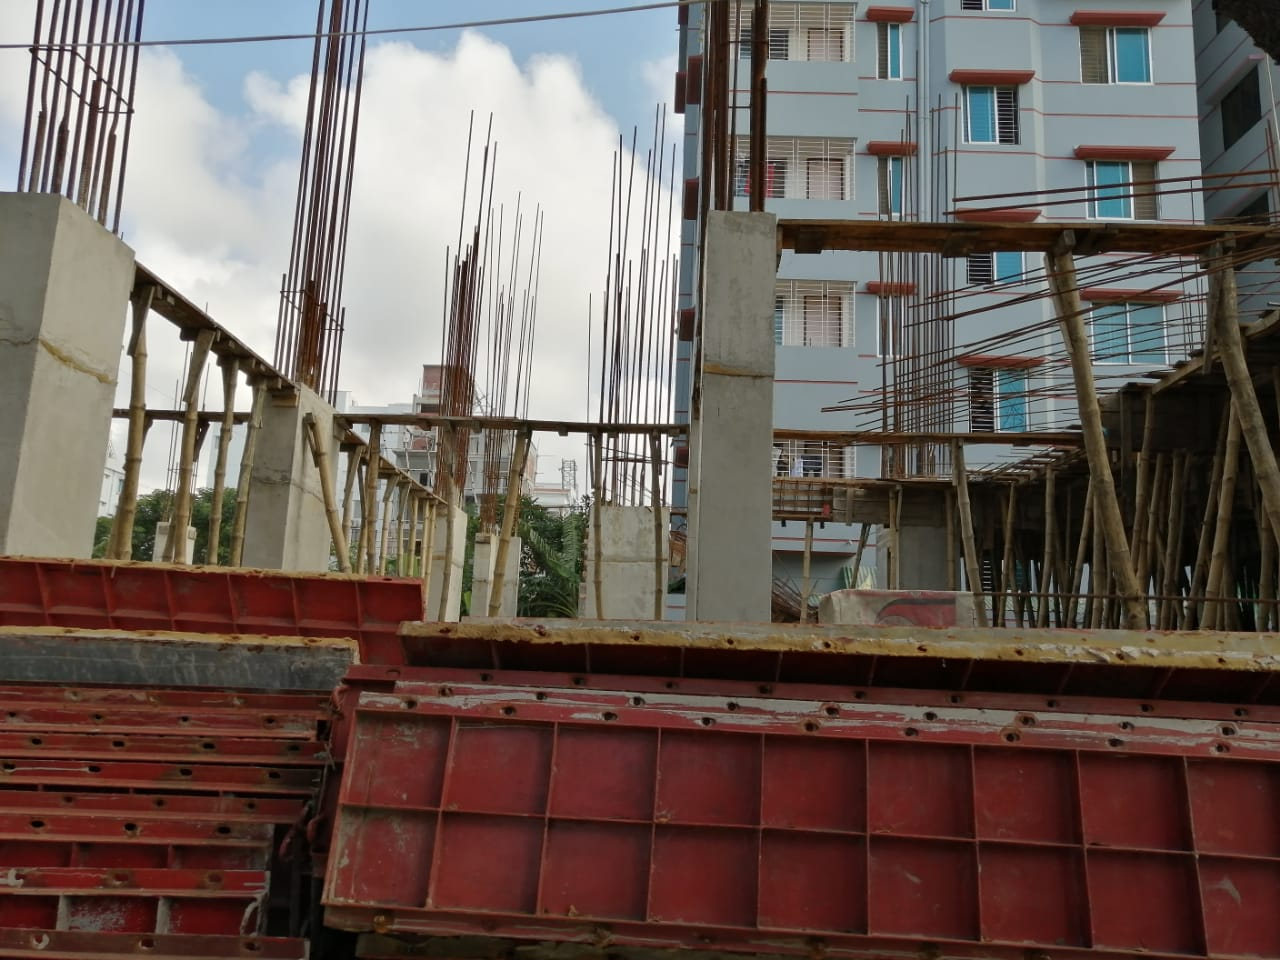 Jams Asha Purna Construction Project is maintained by Construction Dept. of  Jams Construction Ltd. and also Jams Silver Spring Construction Project is maintained by Construction Dept. of  Jams Constr